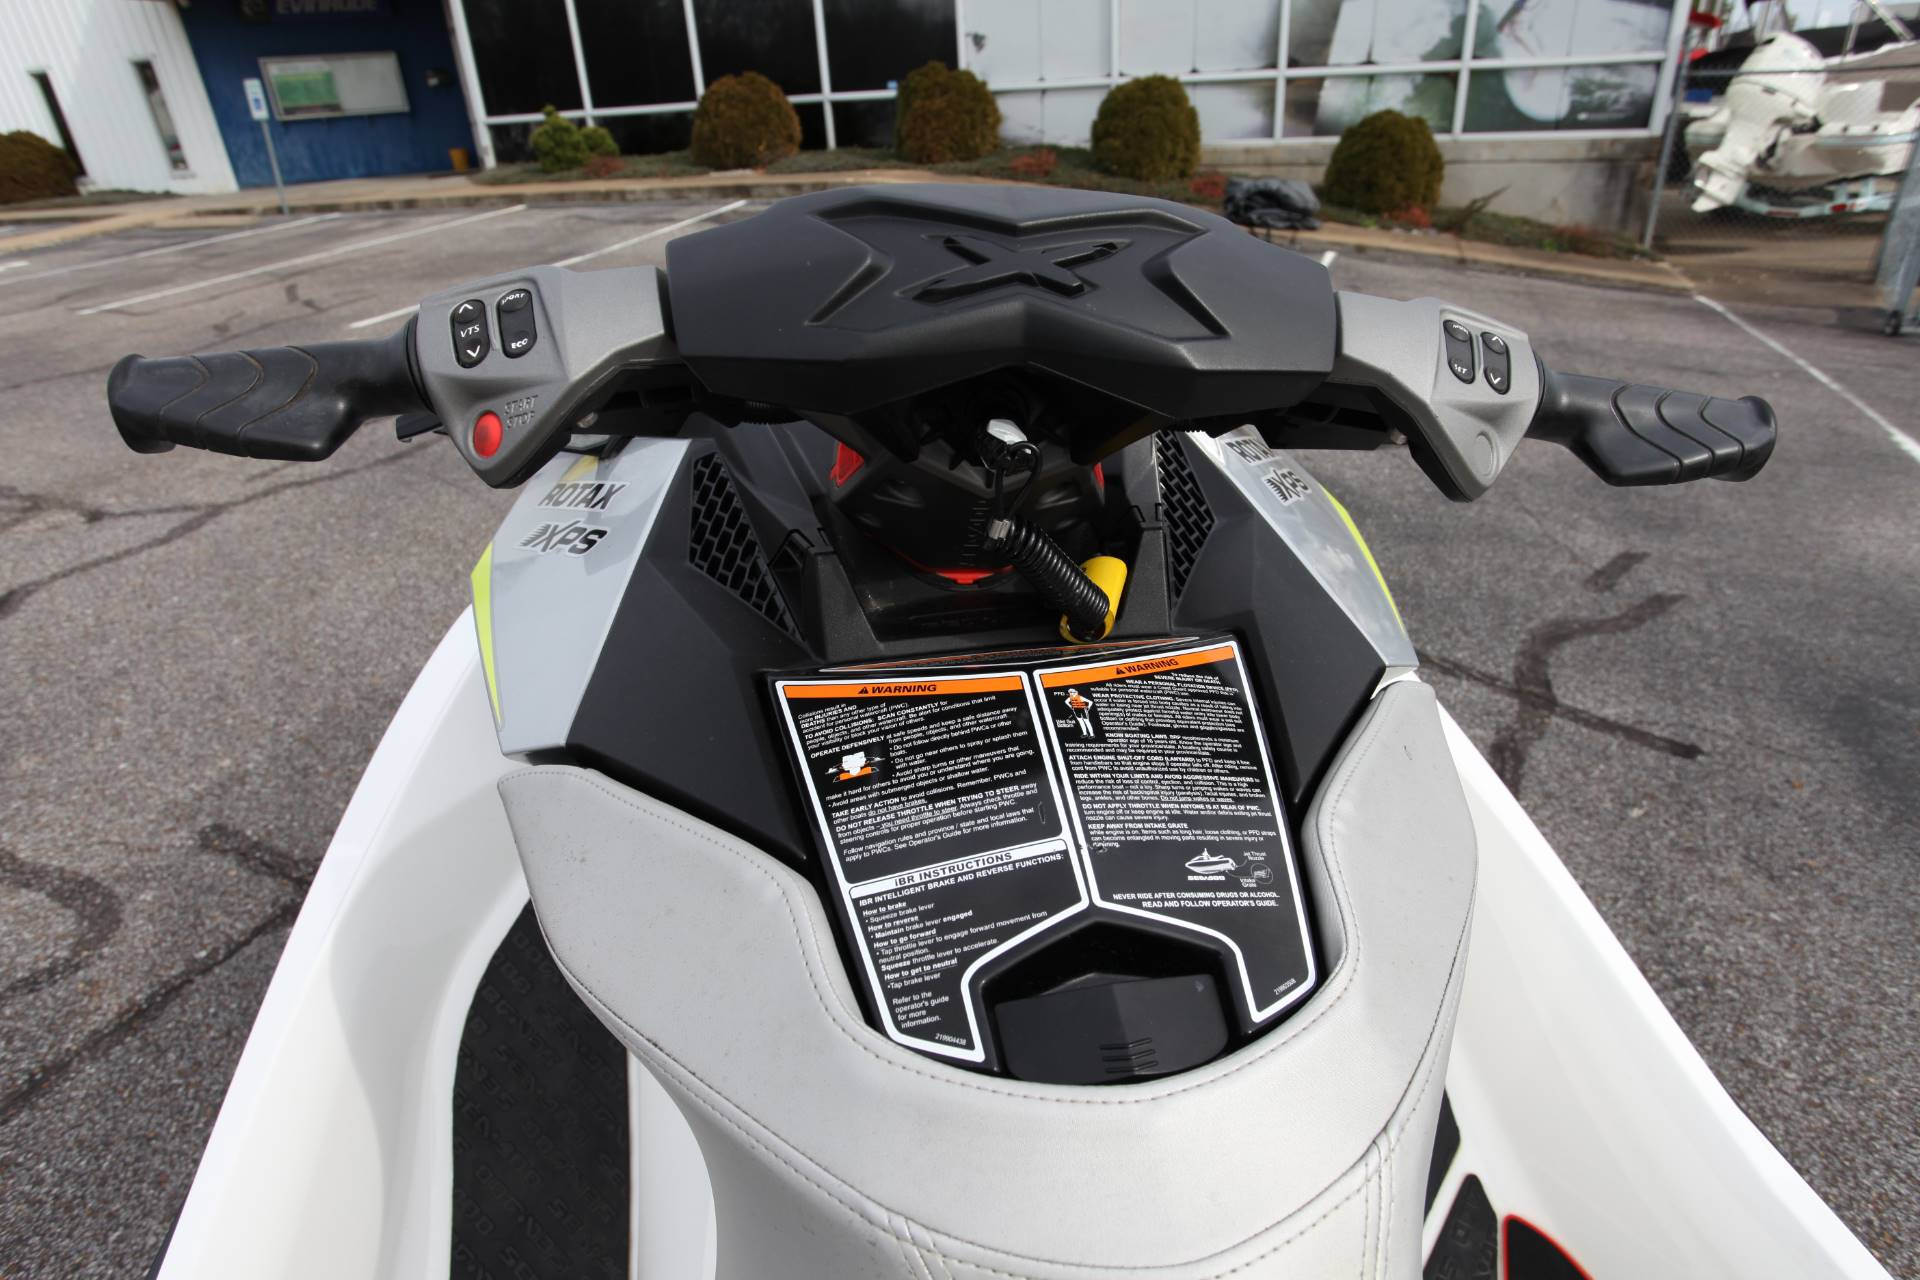 2017 Sea-Doo RXP-X 300 in Memphis, Tennessee - Photo 15